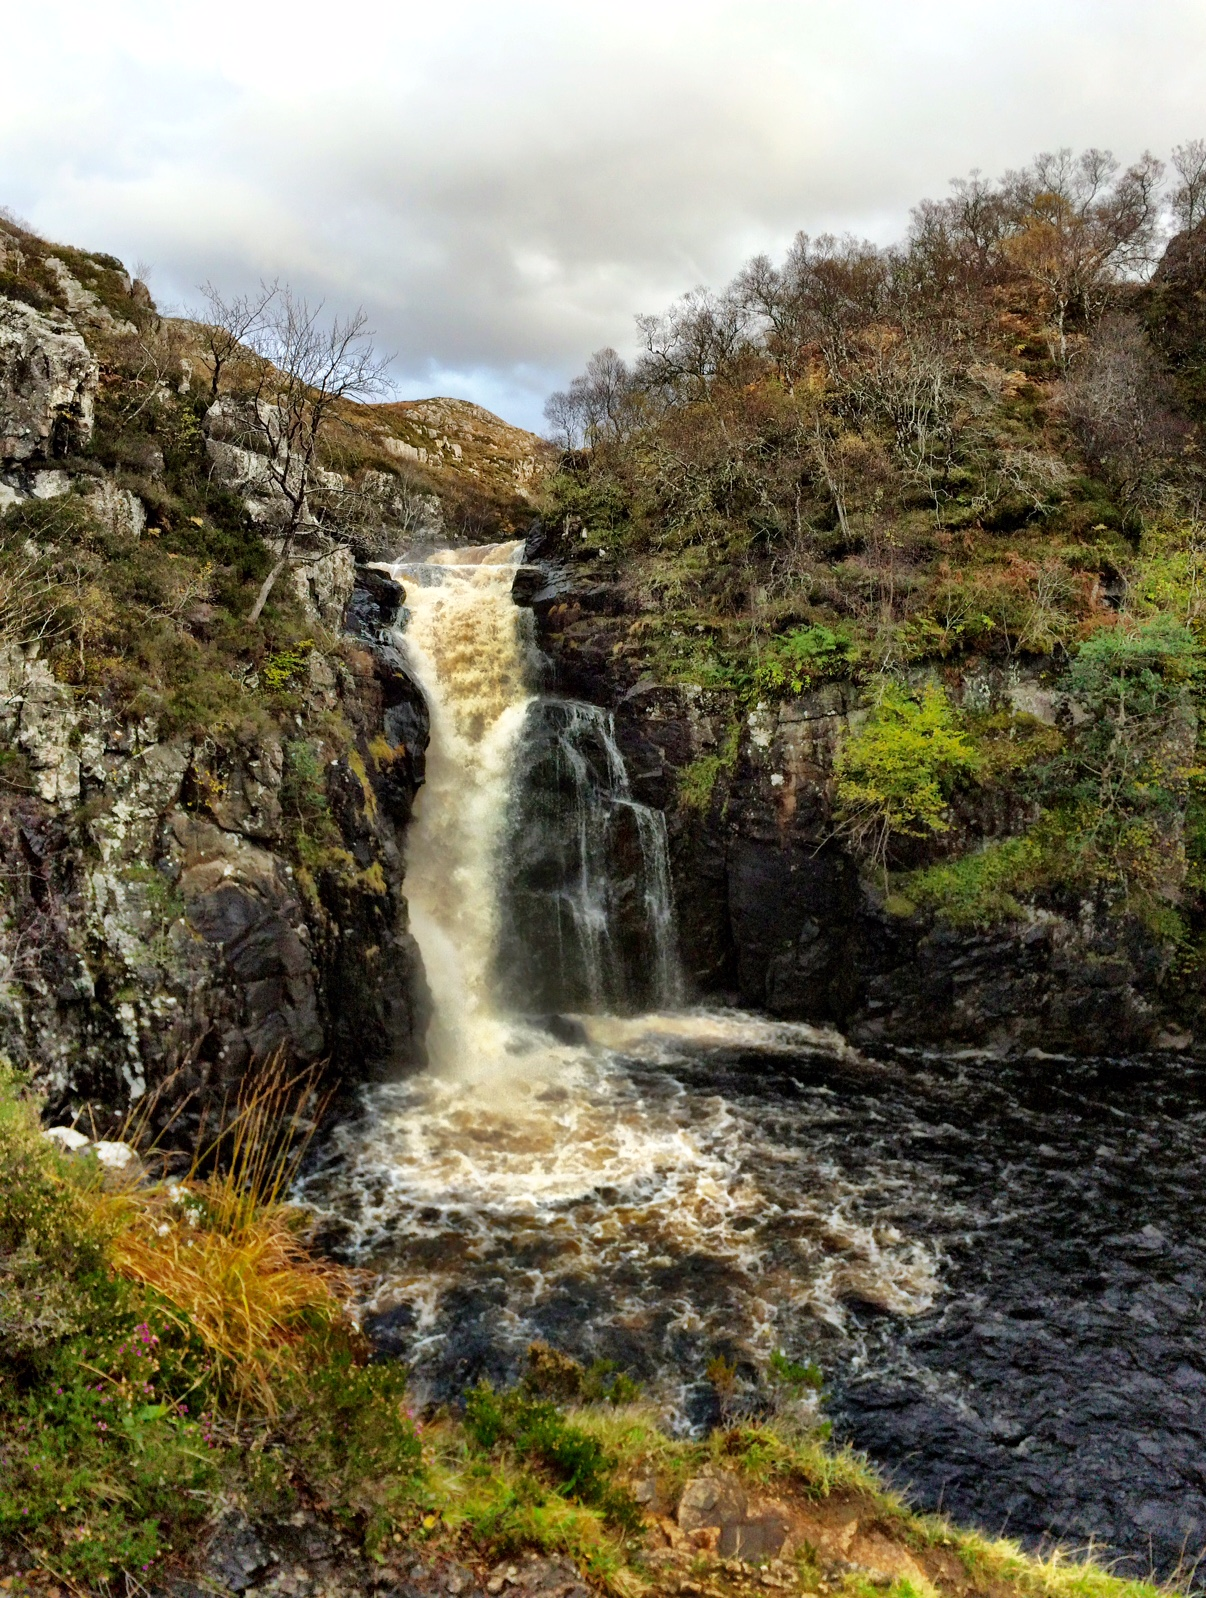 The Falls of Kirkaig and the Hills of the Assynt